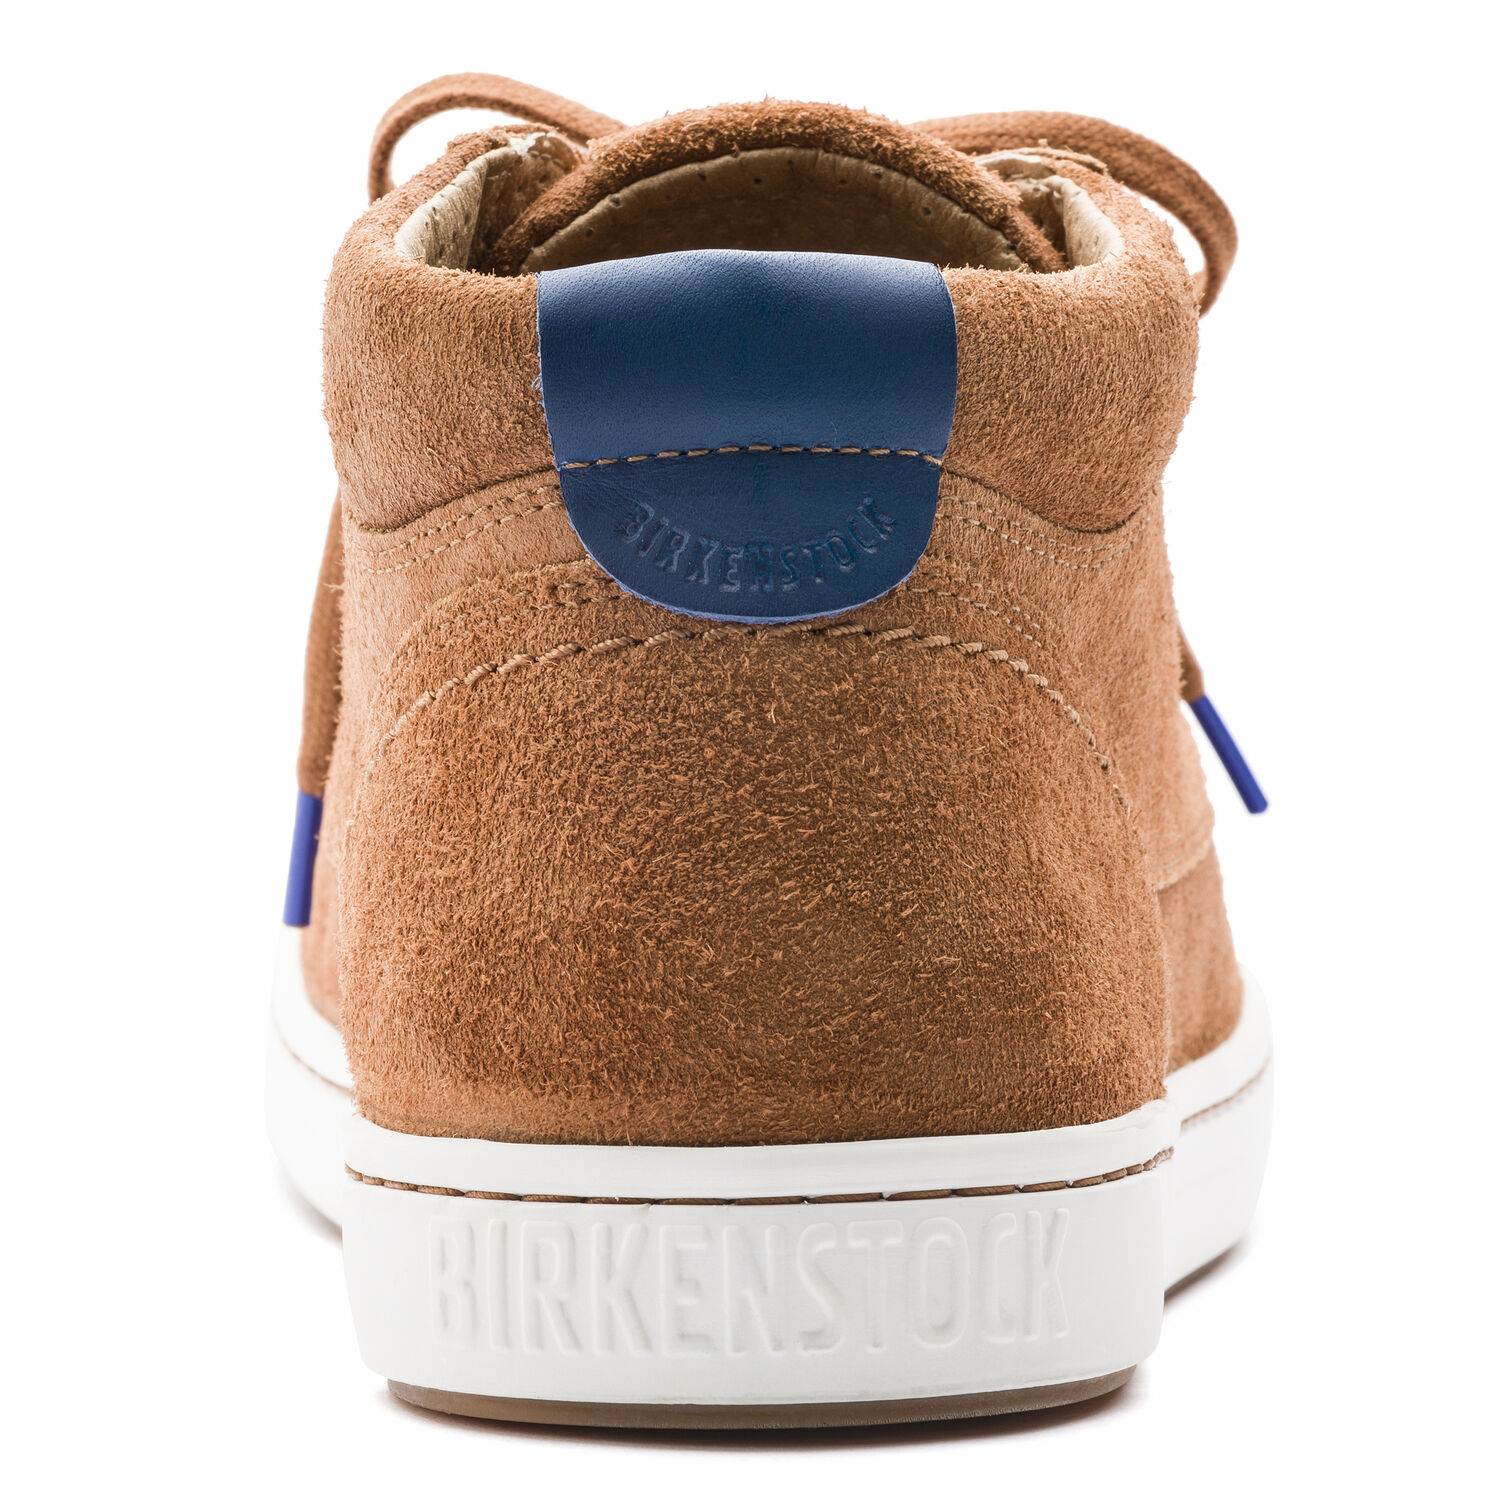 Bandon Suede Leather